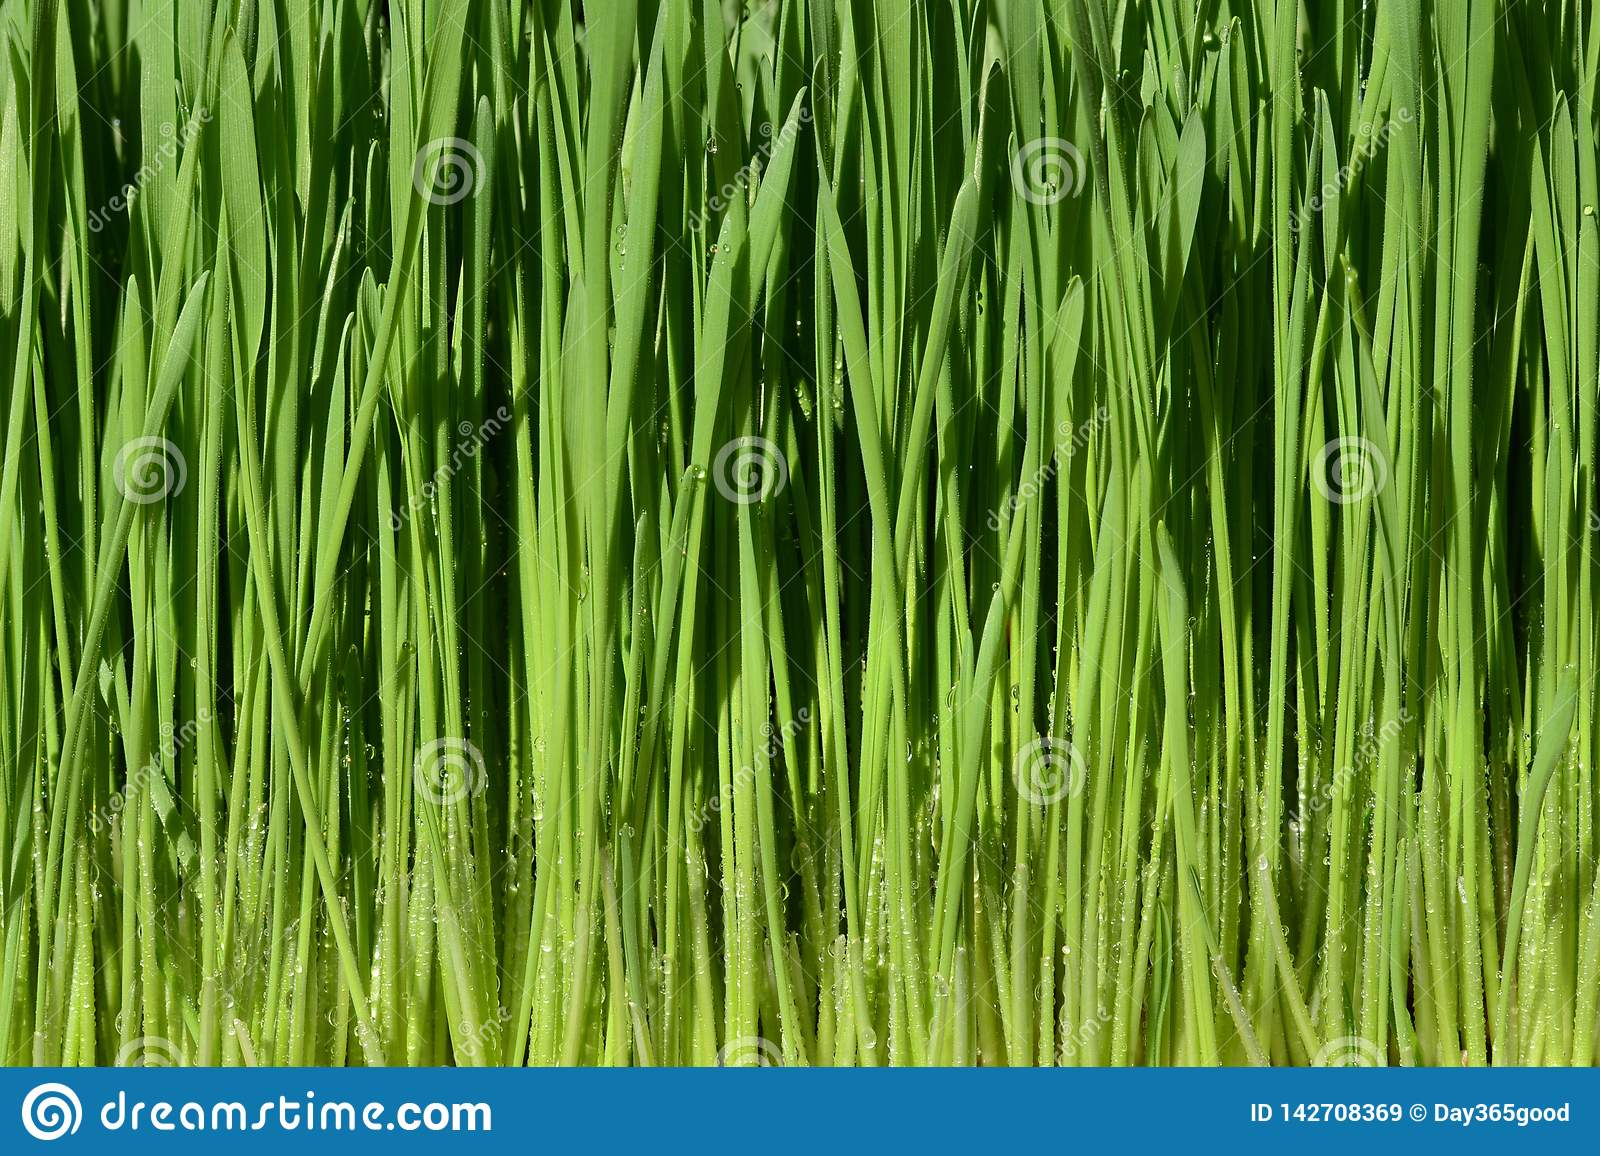 Green wheat grass with water drops